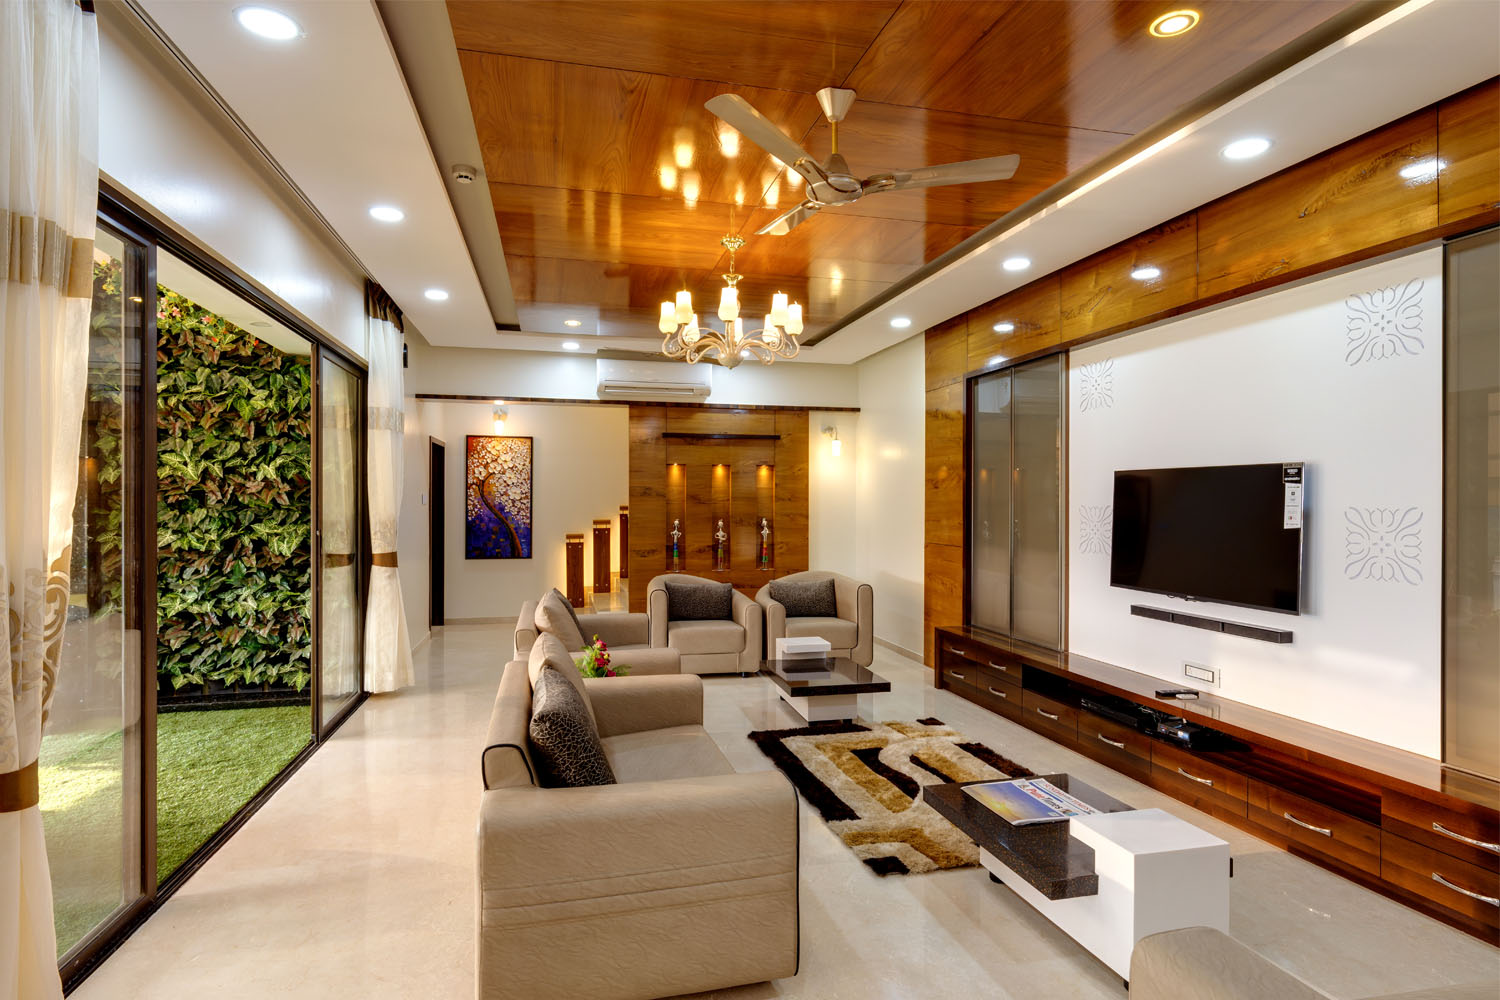 Best interior designer pune nerlekar interior designing for Best interior decorators